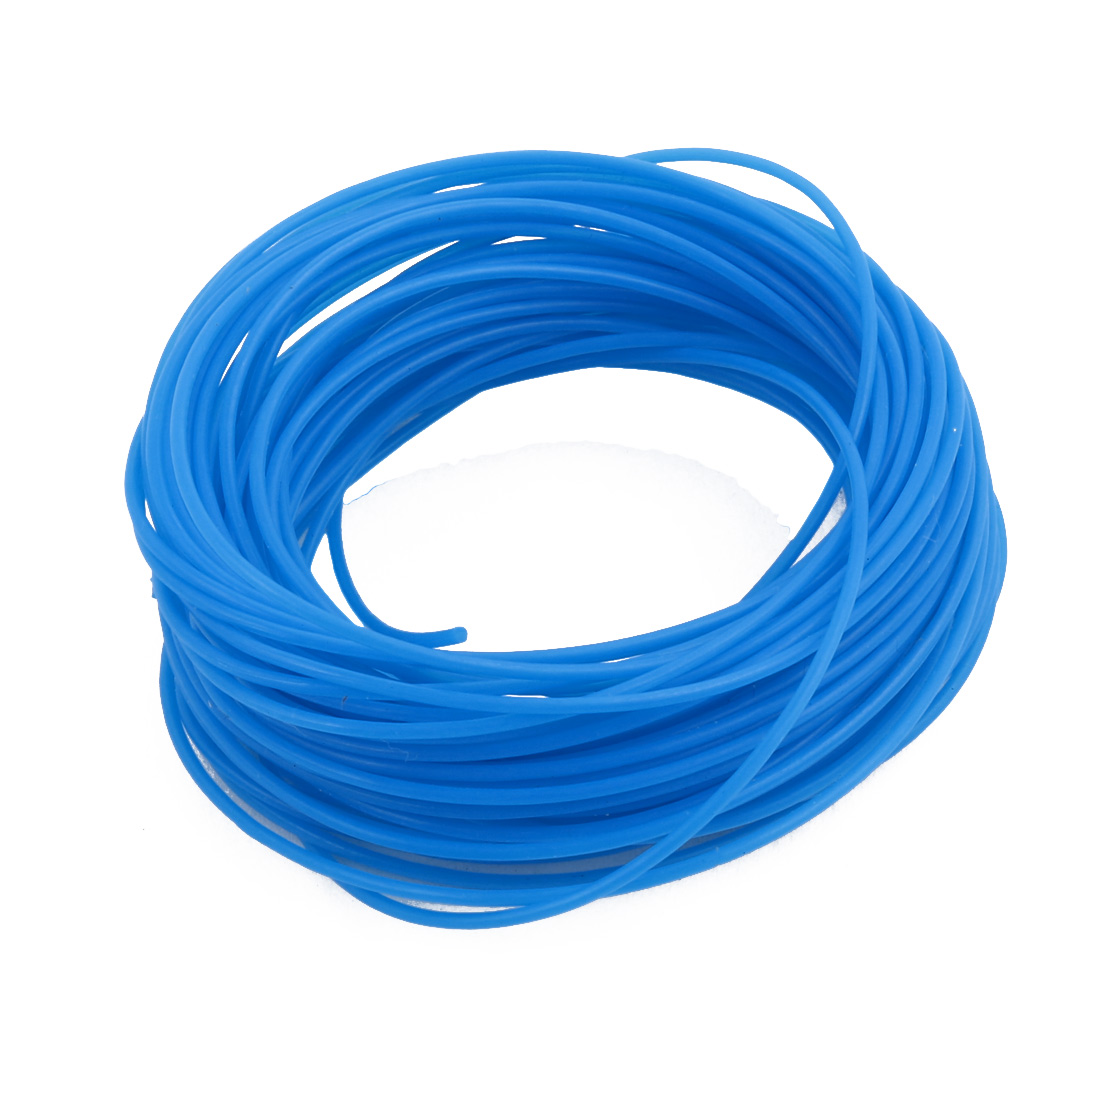 0.86mmx1.16mm PTFE Resistant High Temperature Blue Tubing 5 Meters 16.4Ft